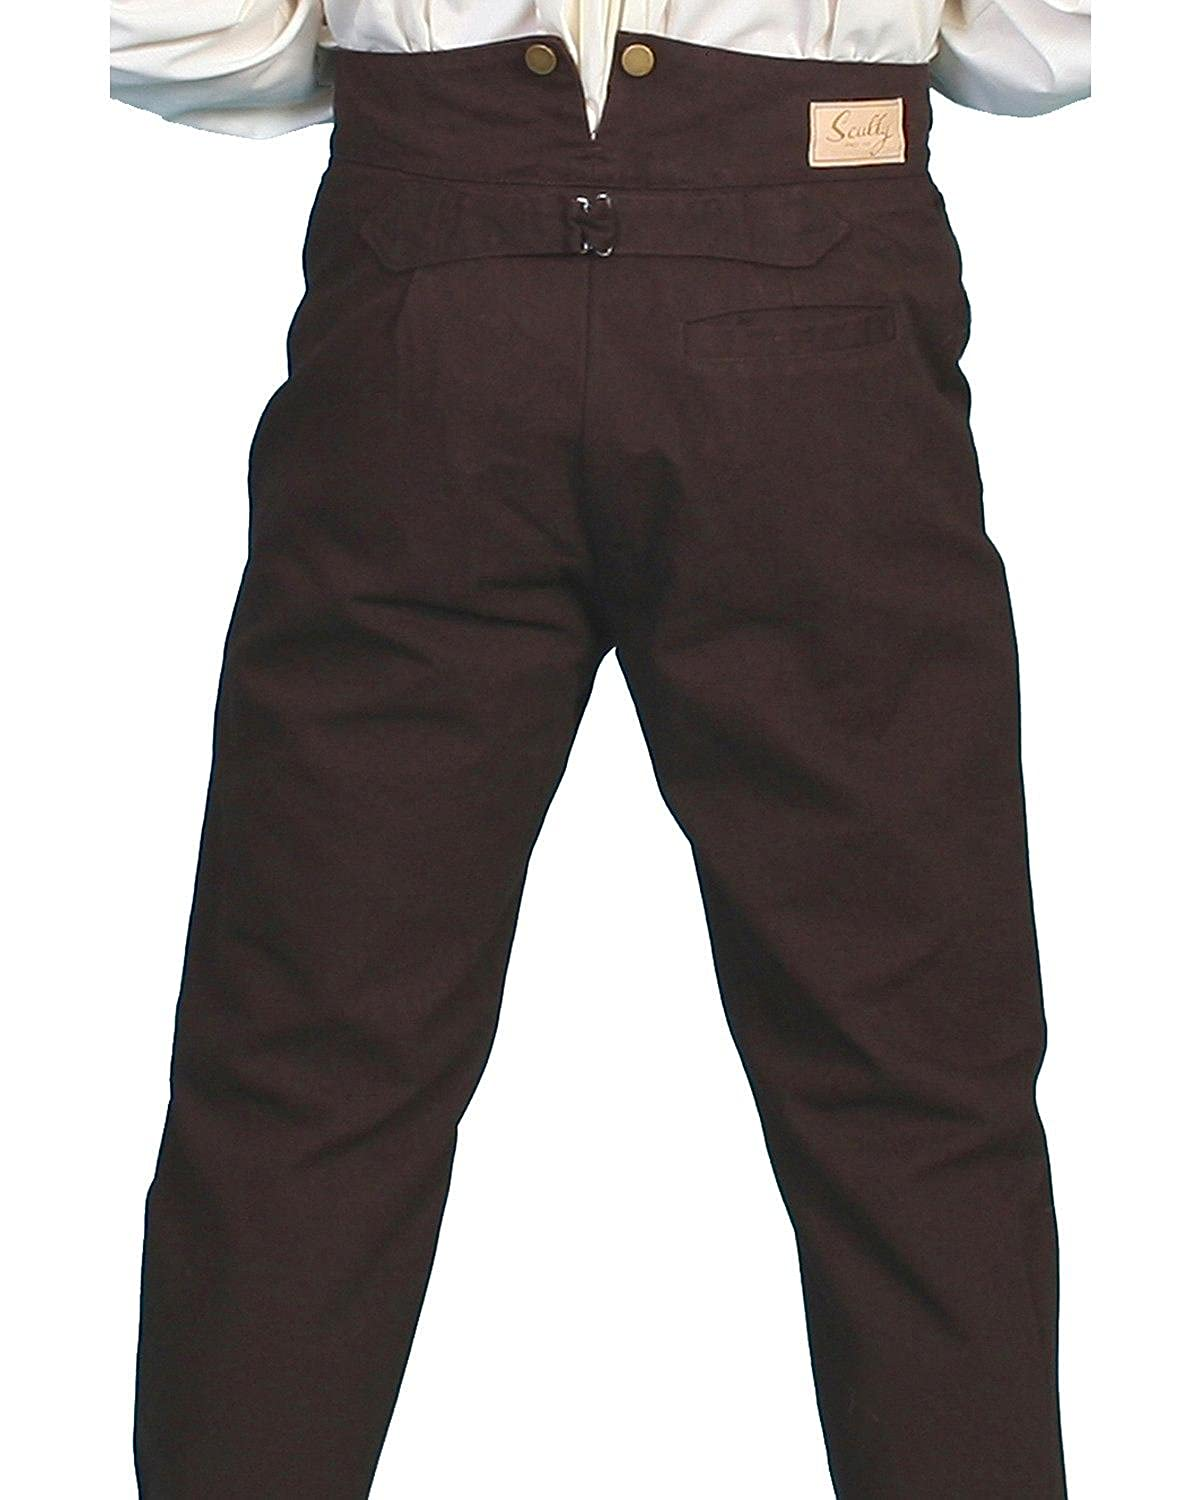 Victorian Men's Pants – Victorian Steampunk Men's Clothing Scully Rangewear Mens Rangewear Canvas Pants $51.90 AT vintagedancer.com